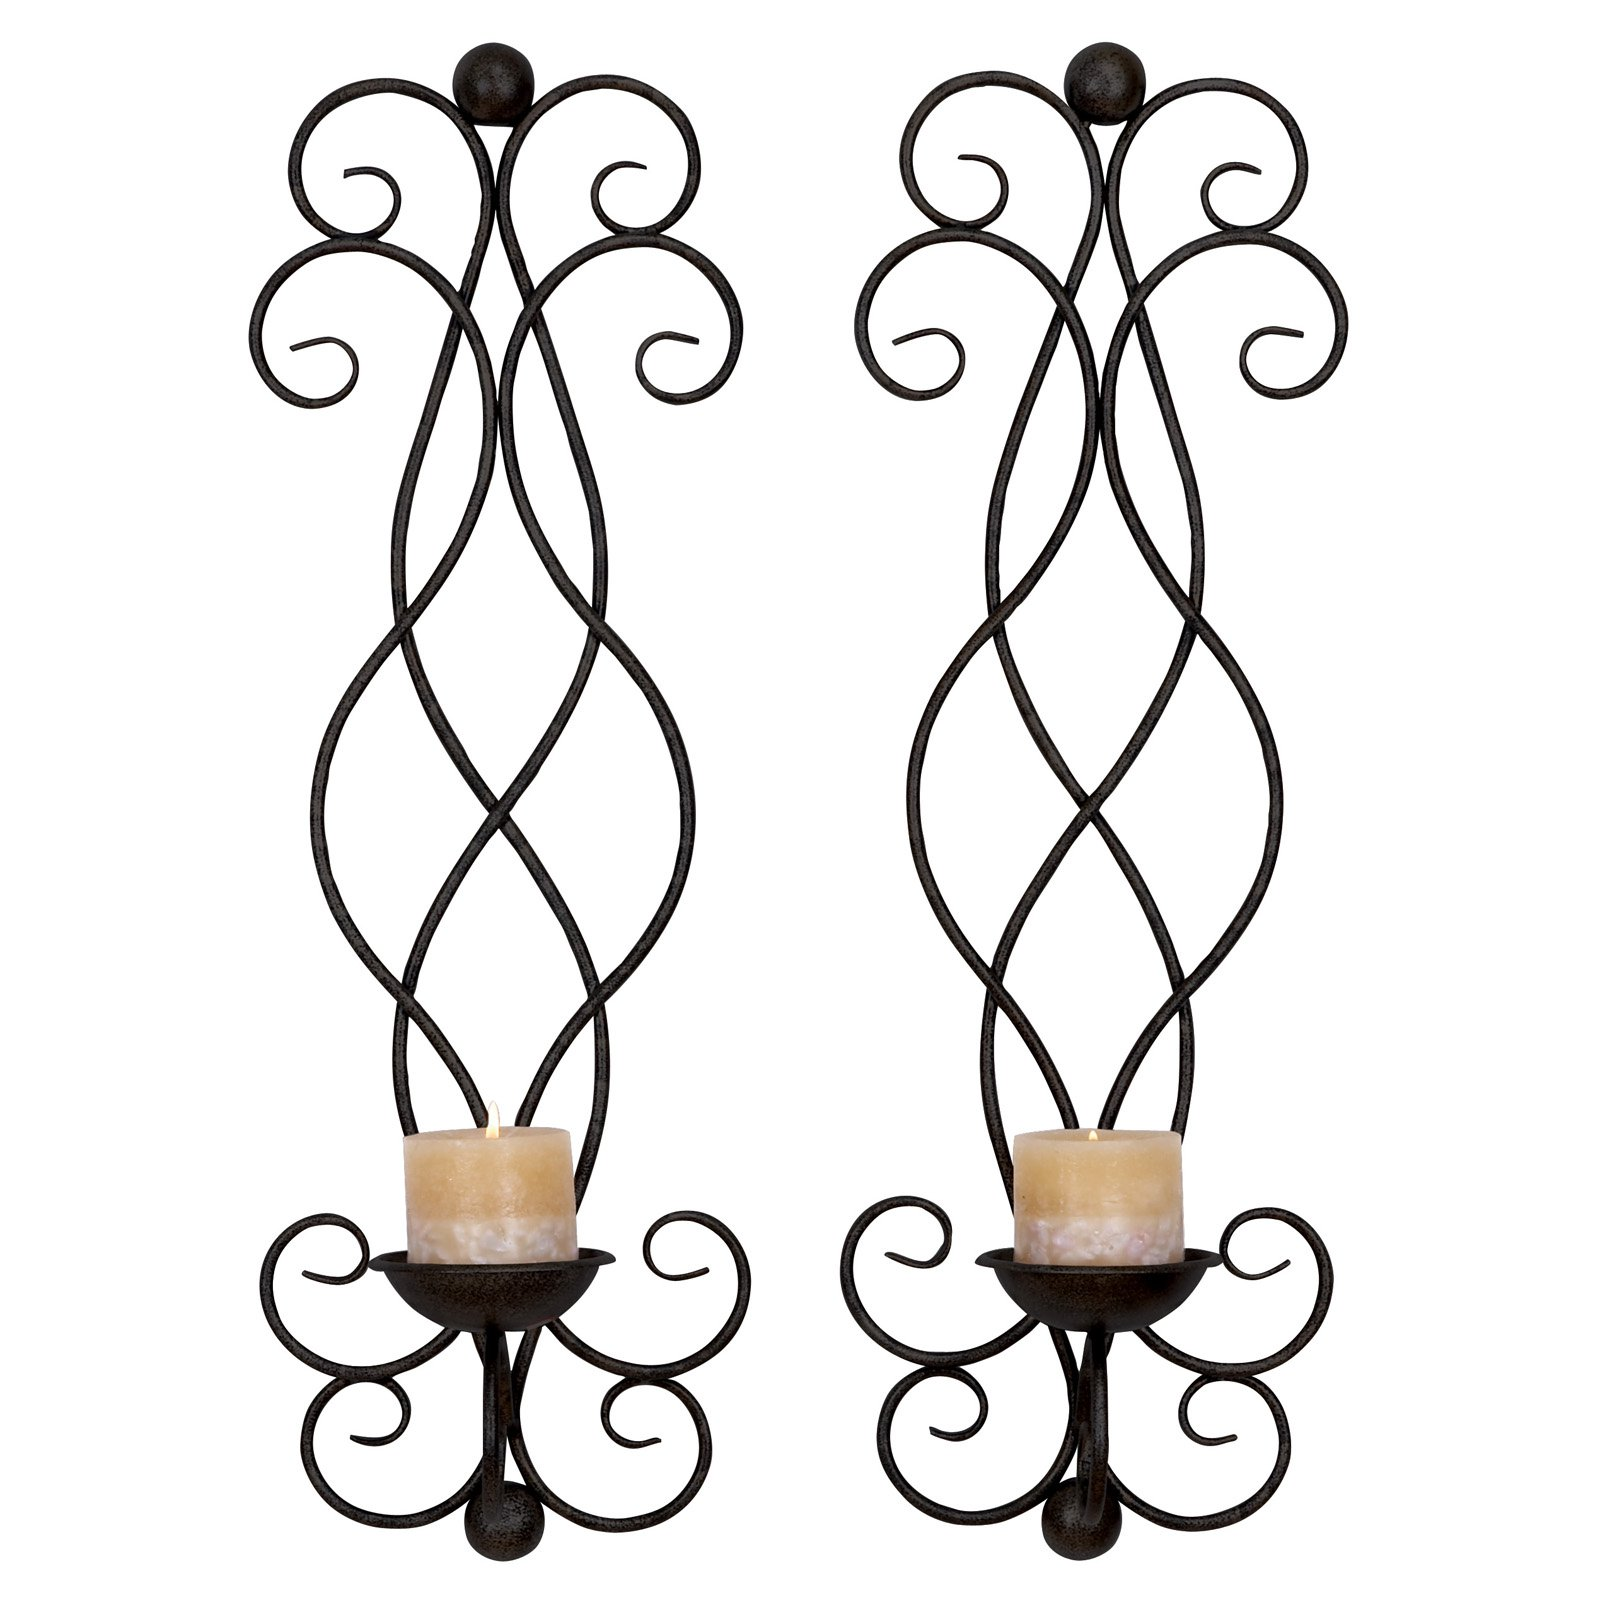 Decmode Metal Candle Sconce, Set of 2, Black by DecMode